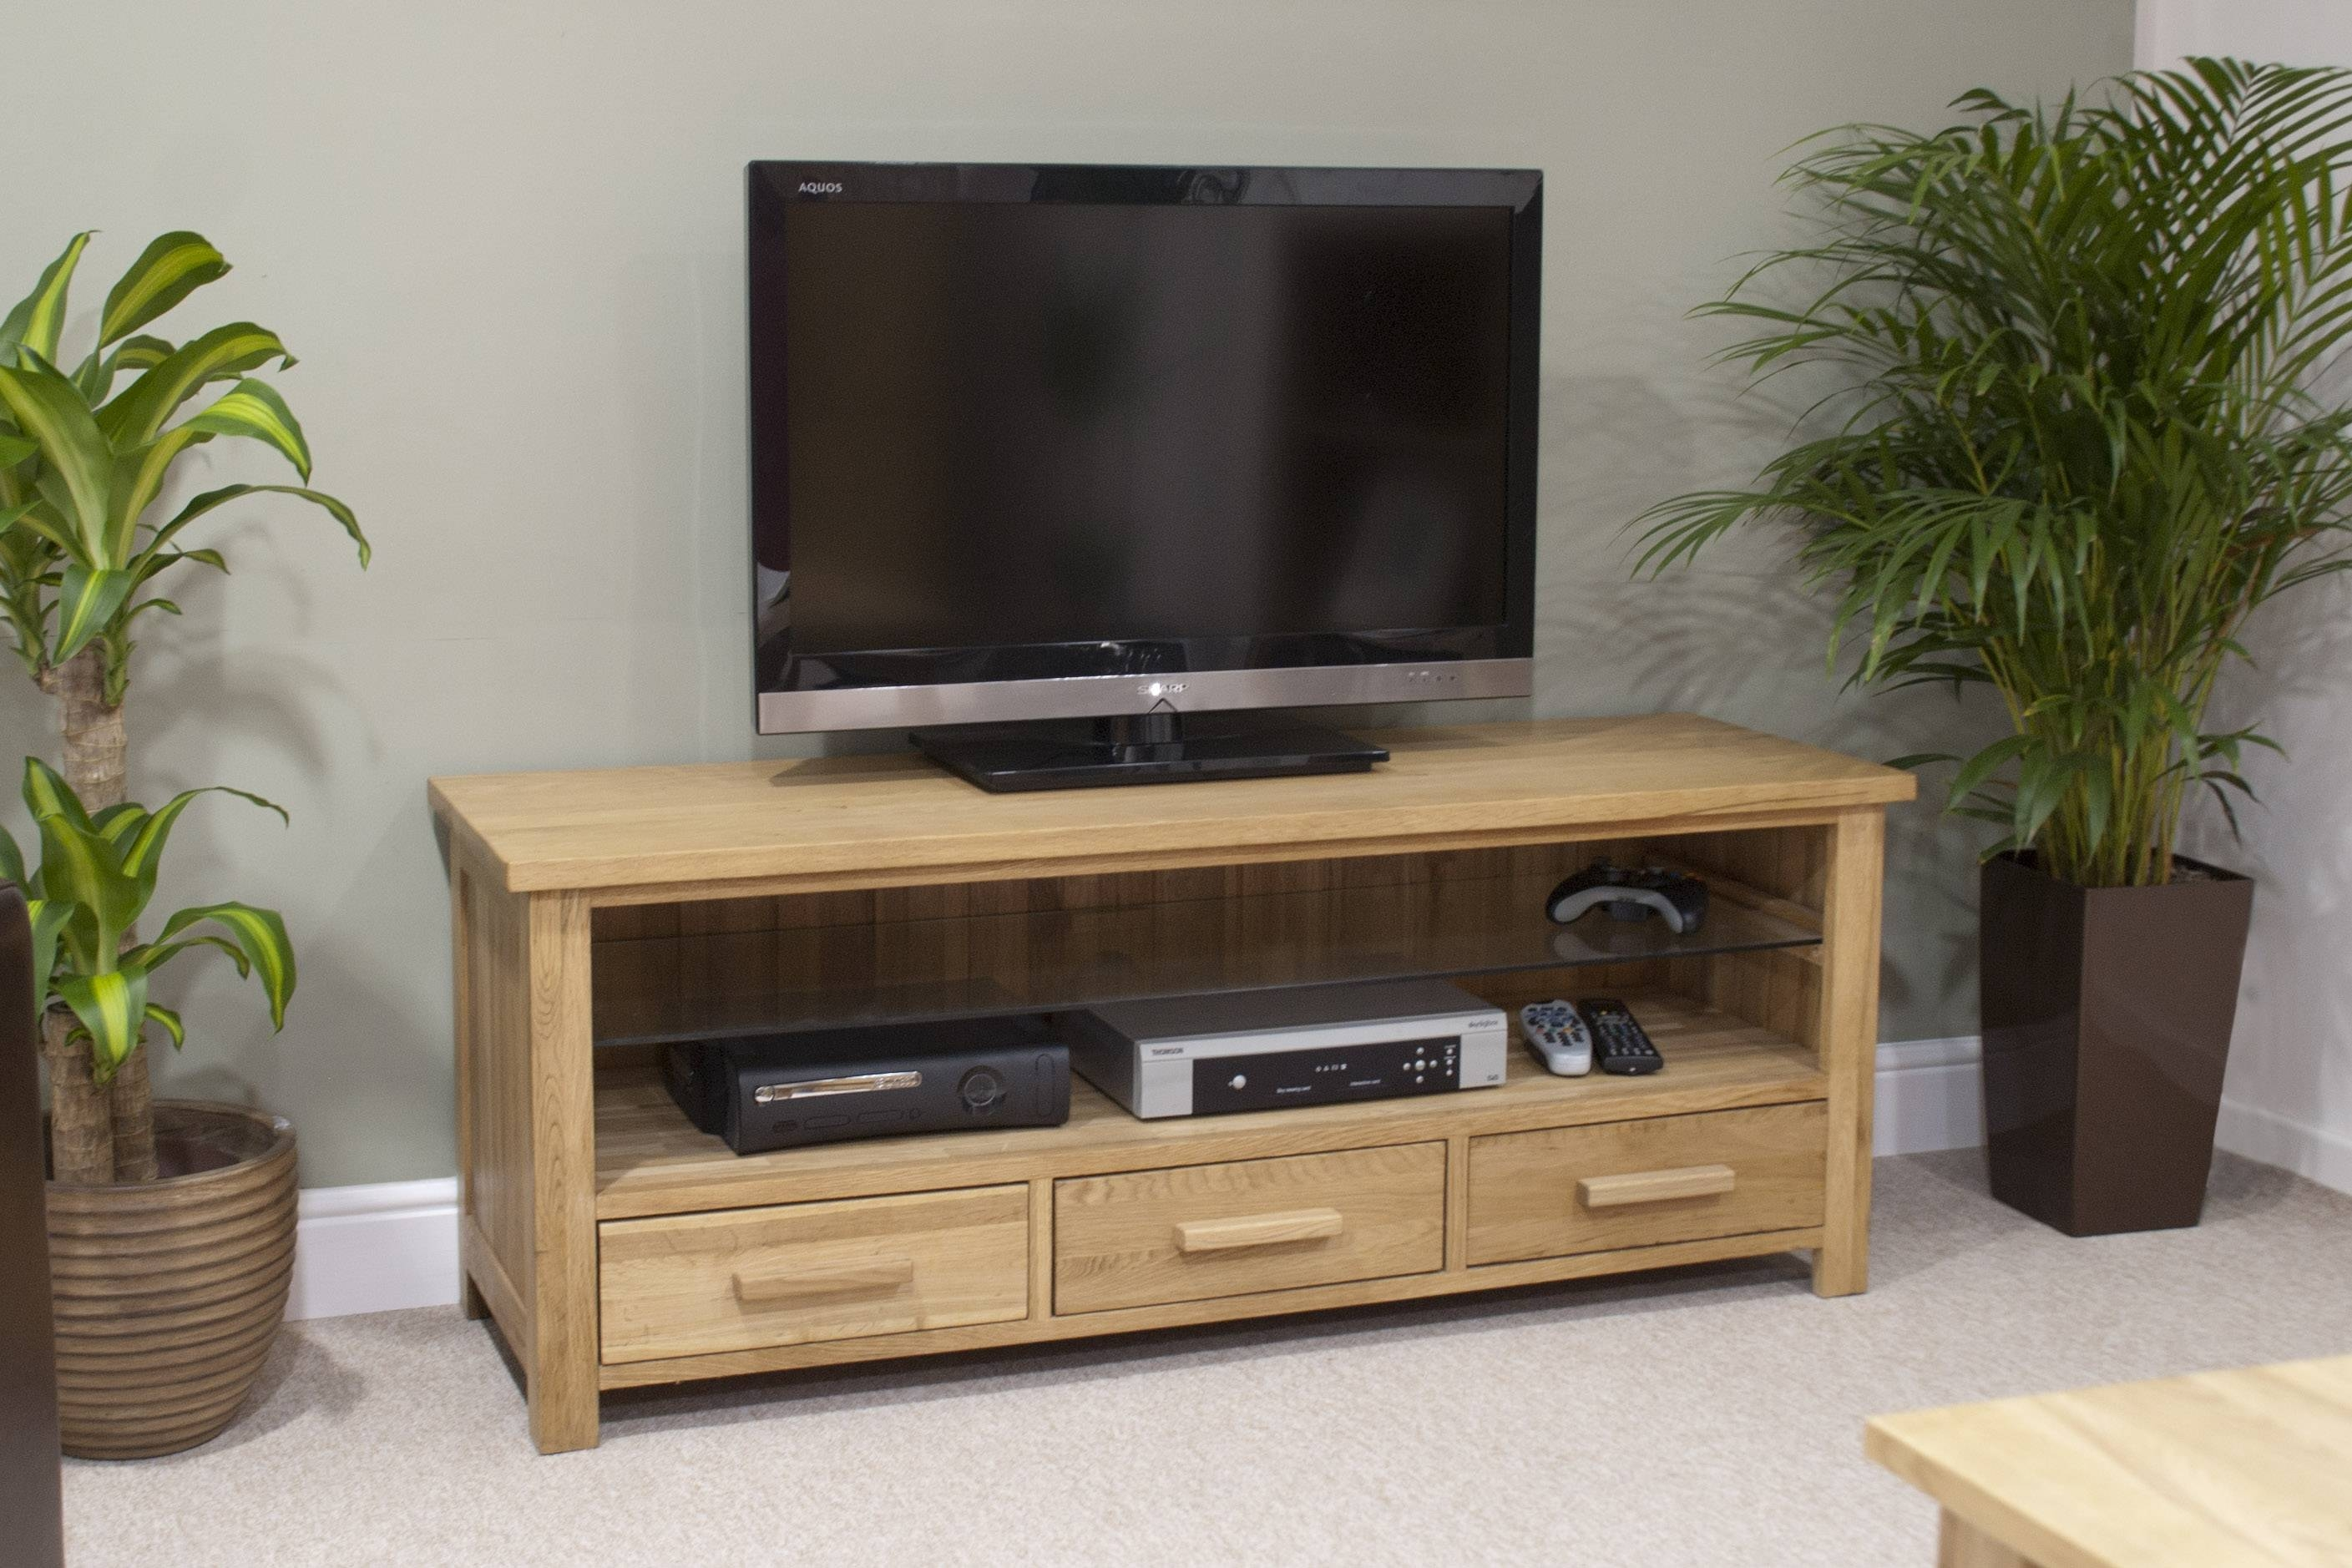 Fantastic Furniture | Pine And Oak | Furniture Workshoppe in Pine Tv Cabinets (Image 6 of 15)